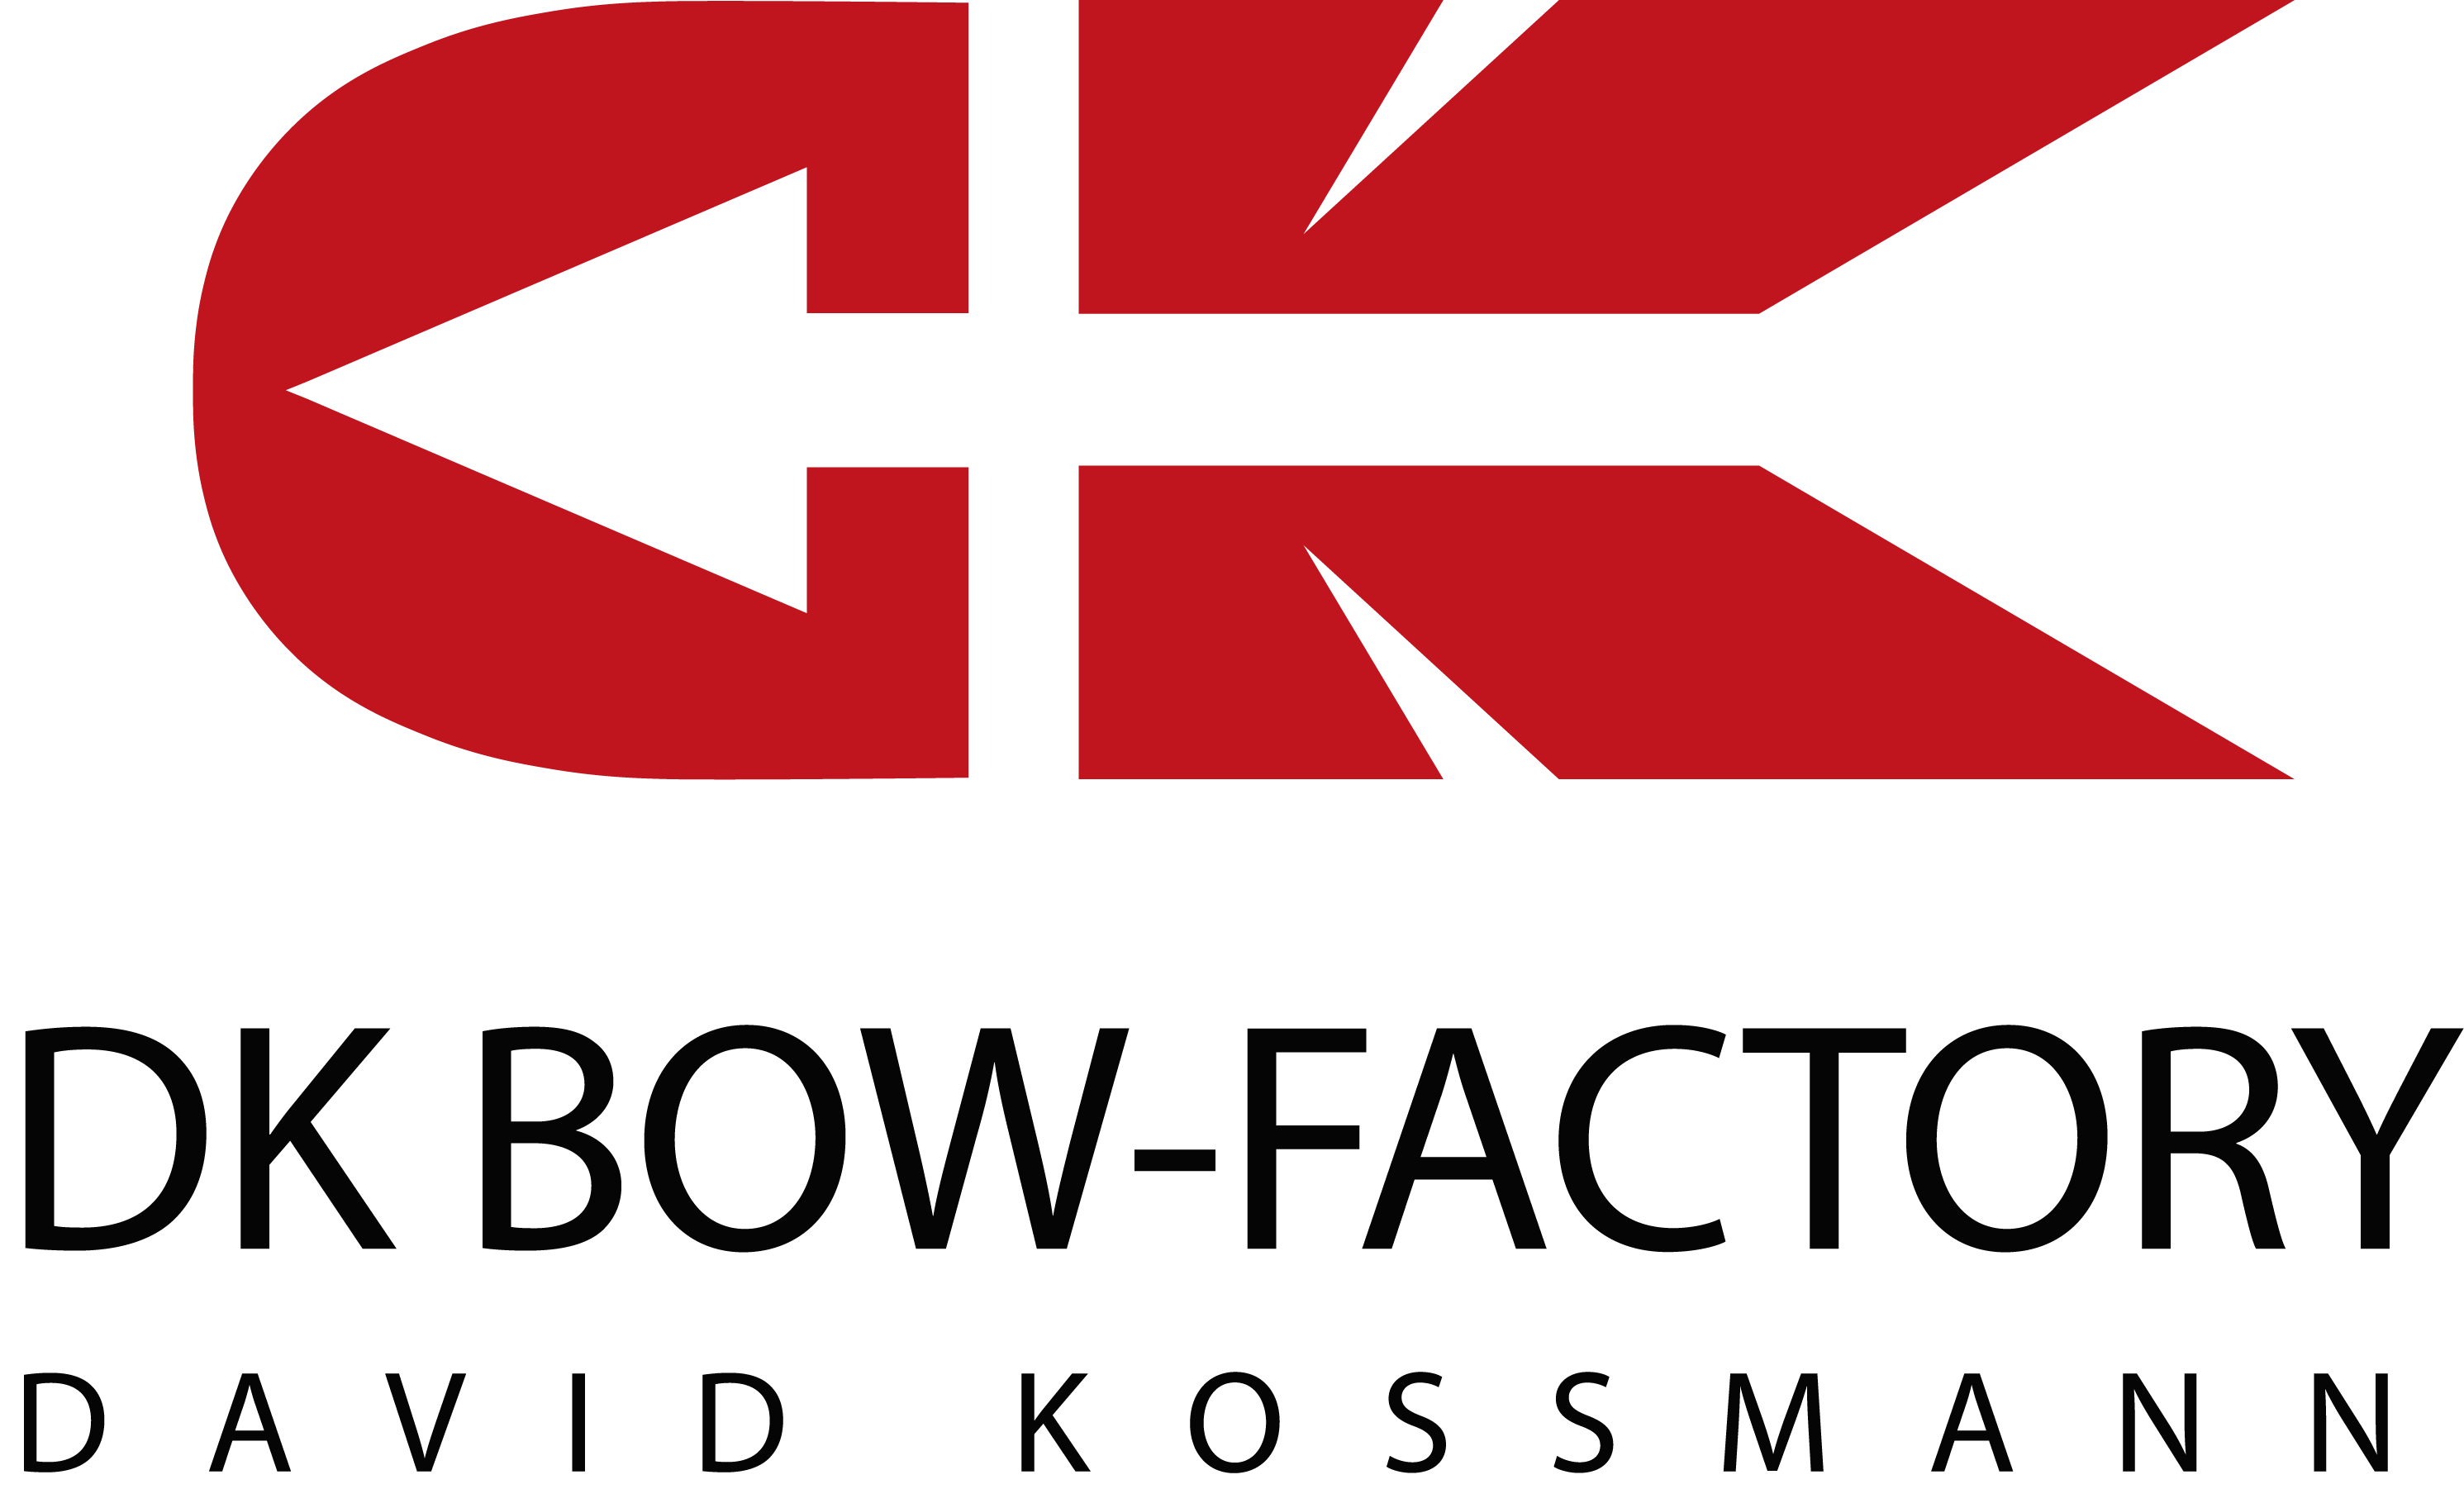 DK Bow-Factory